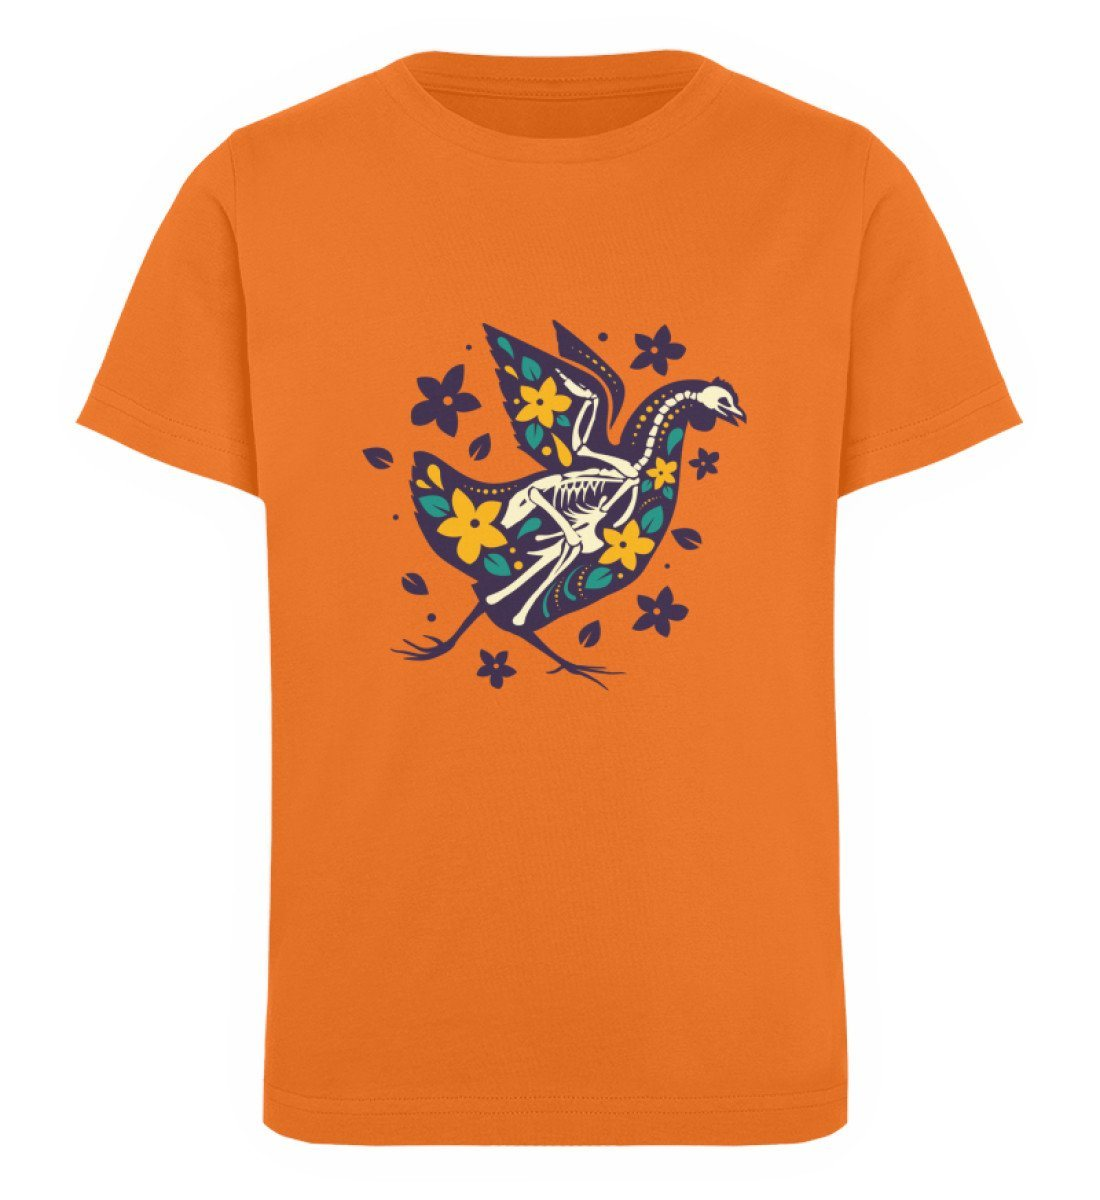 Bio T-Shirt Kinder günstig Balury Tierbilder Bright Orange 12/14 (152/164)